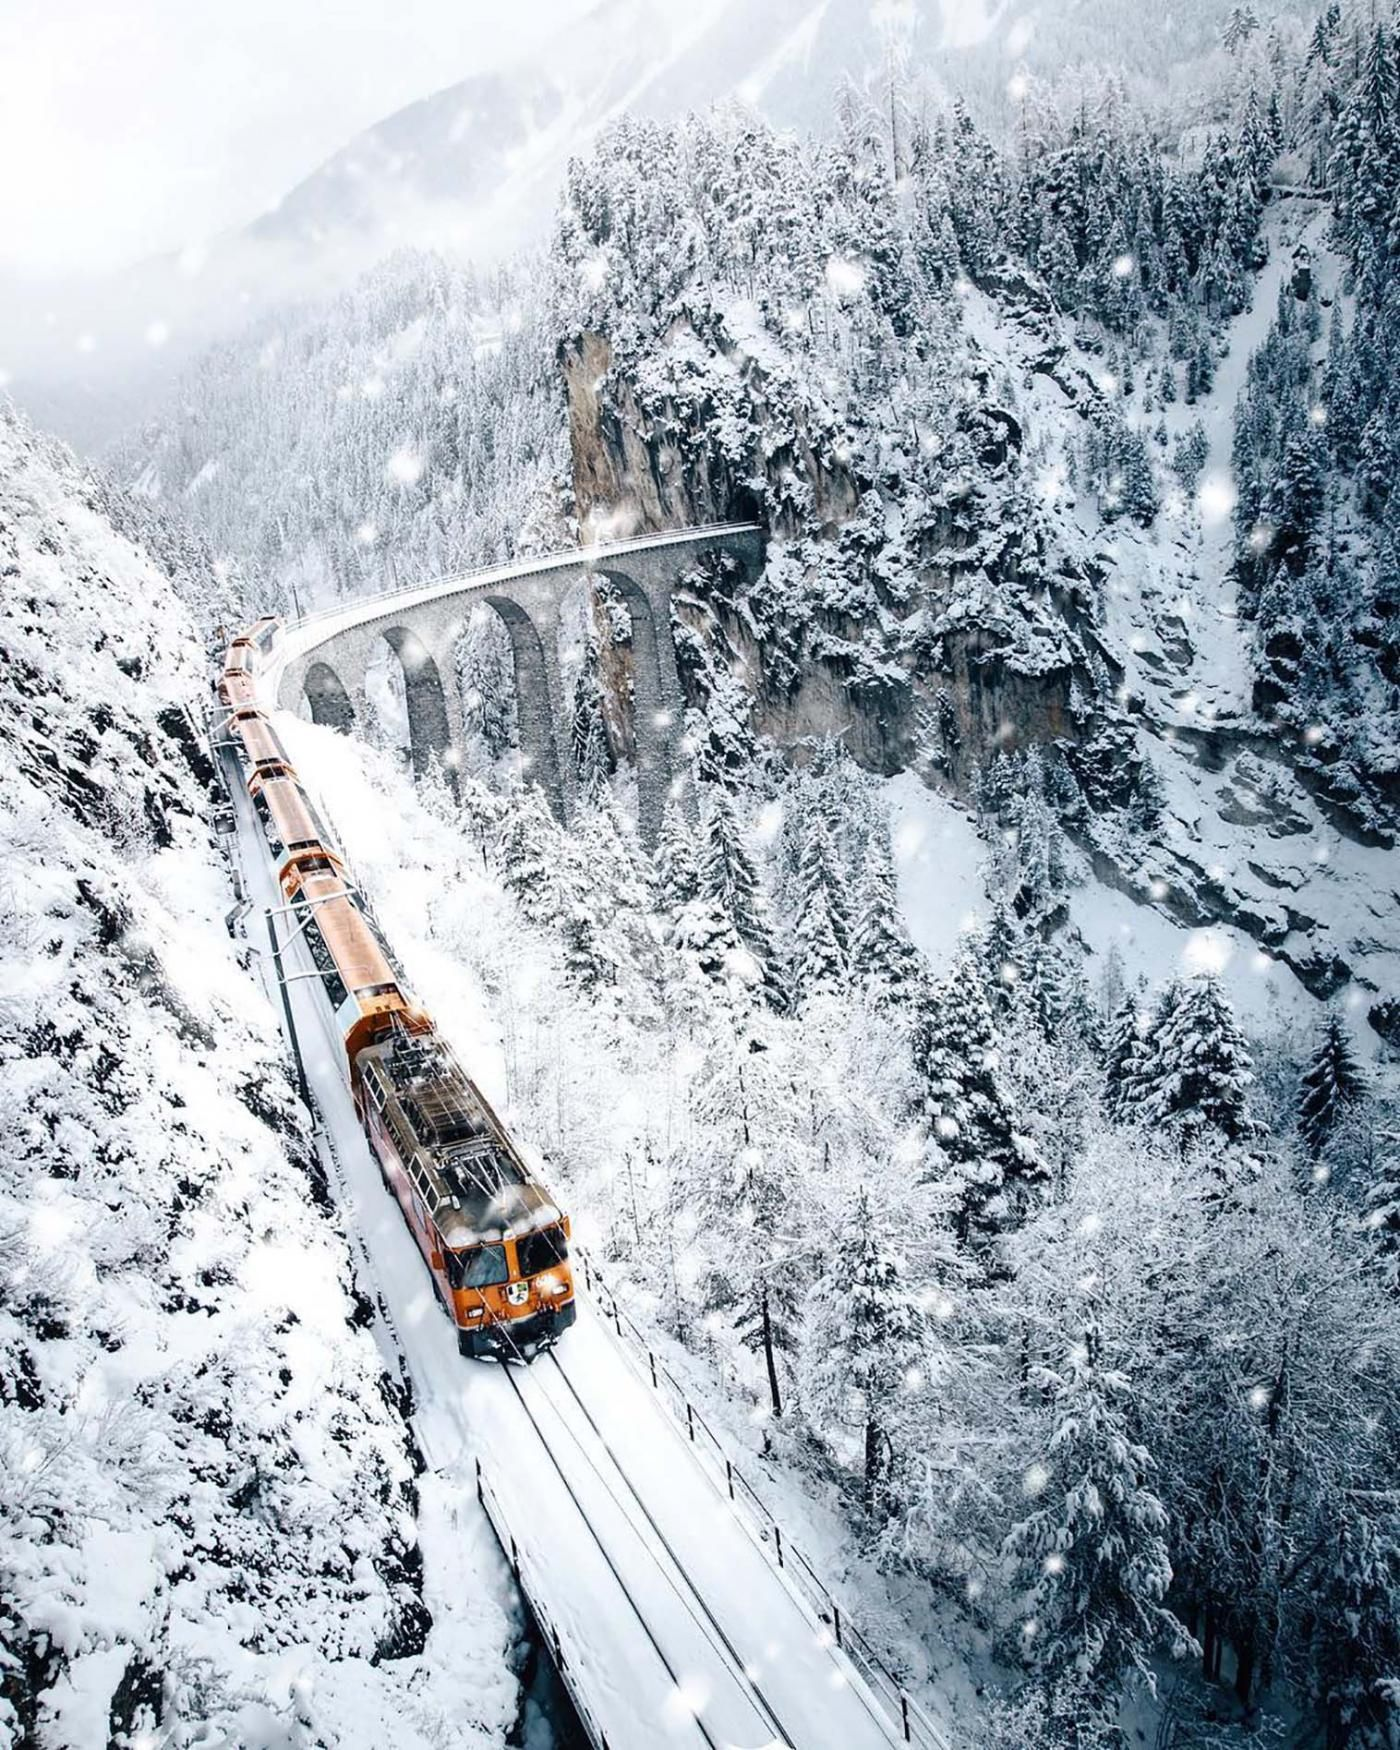 Train Trip Across Usa: We Can Hardly Believe This Train Ride Through The Swiss